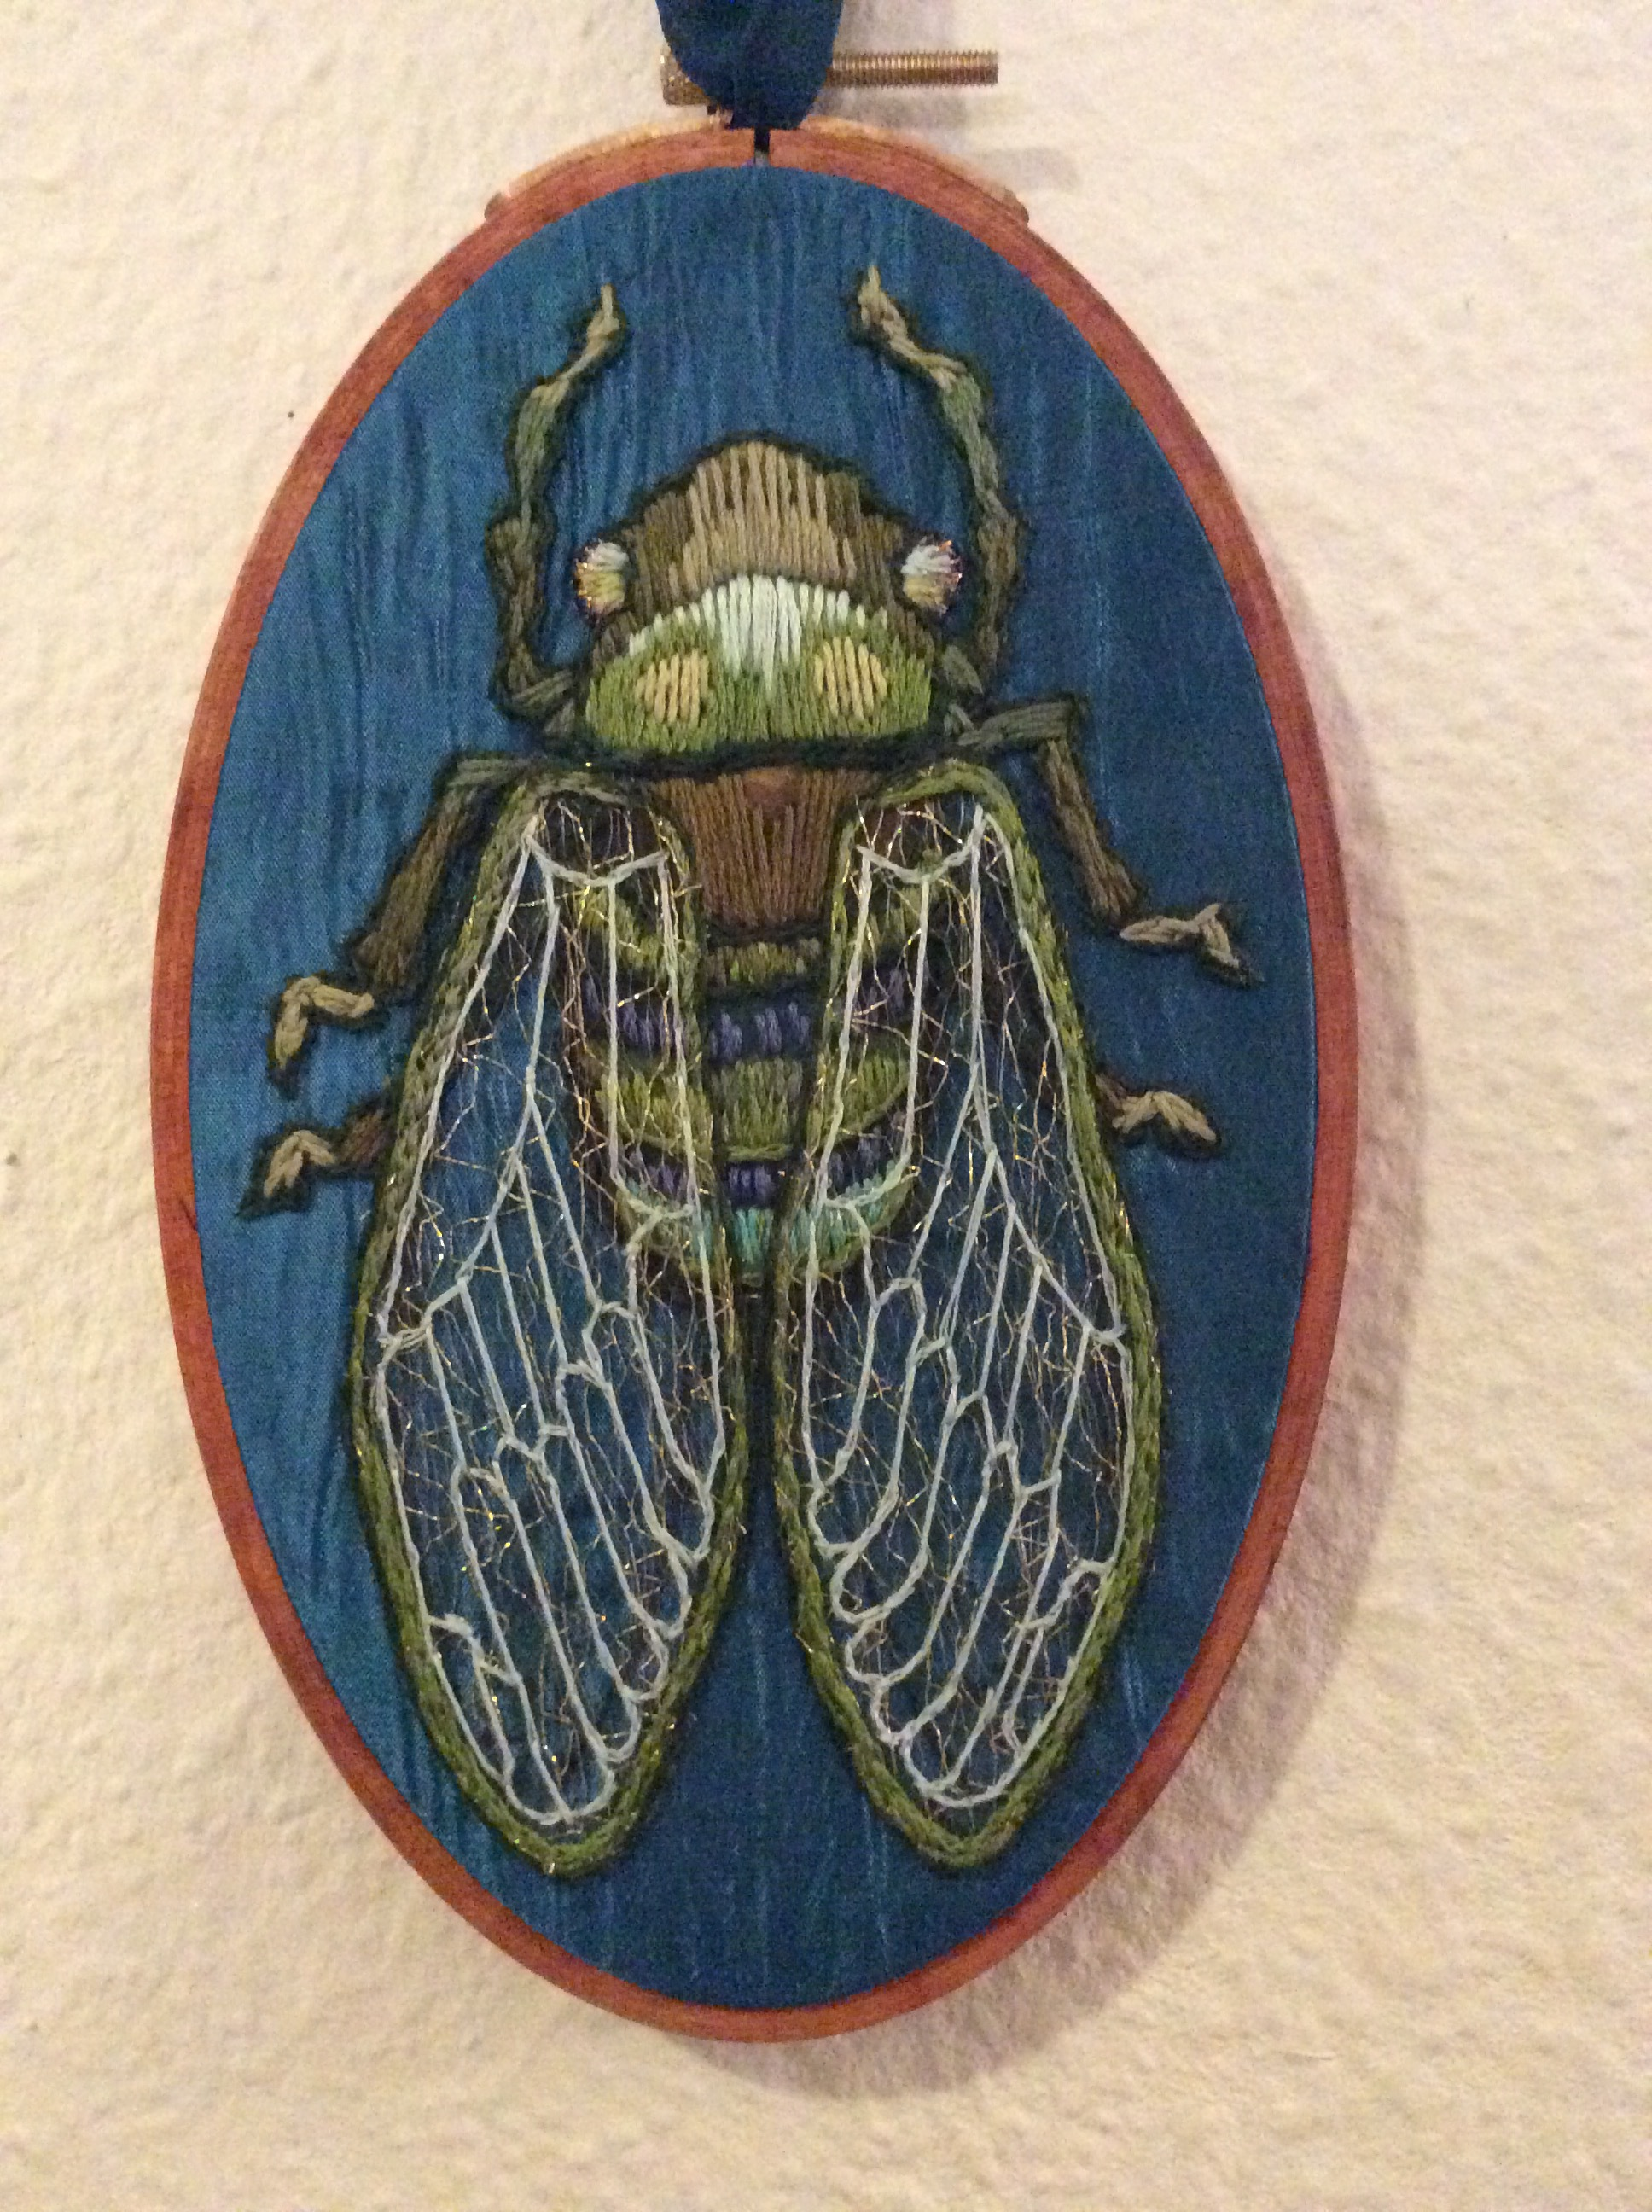 Embroidery By Suzanne Forbes 2015 · Embroidery By Suzanne Forbes 2015